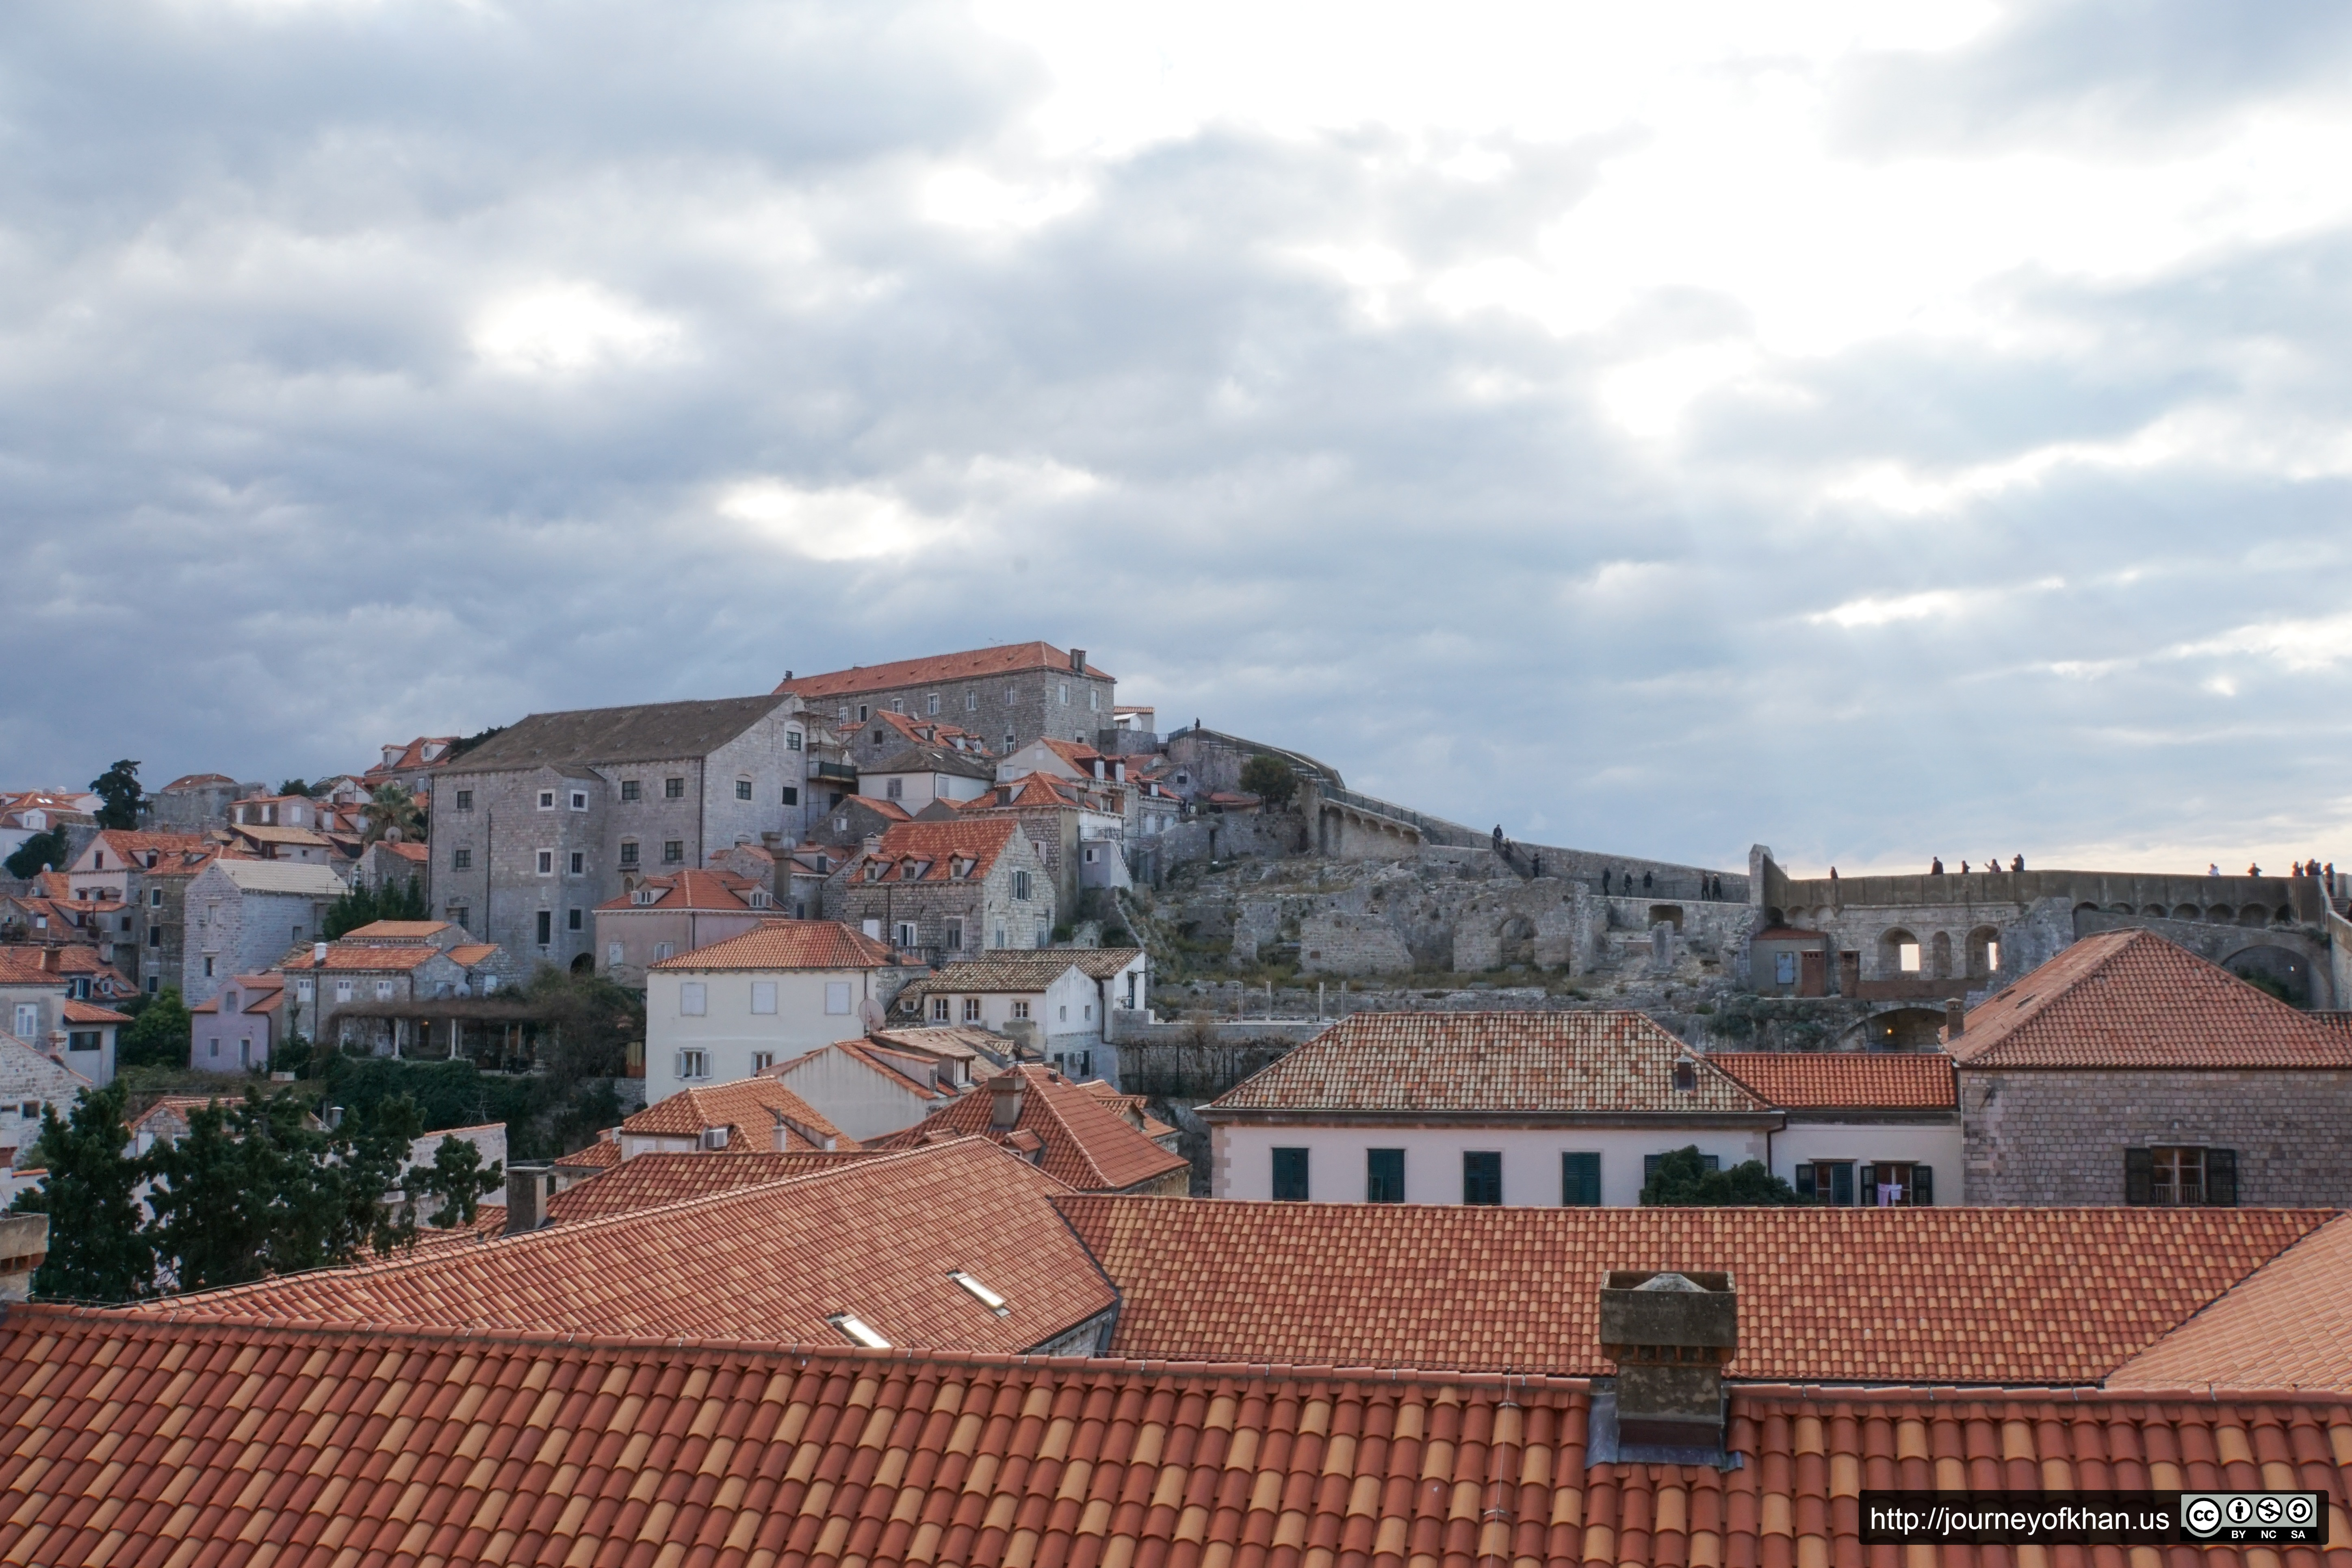 Roofs and Walls (High Resolution)